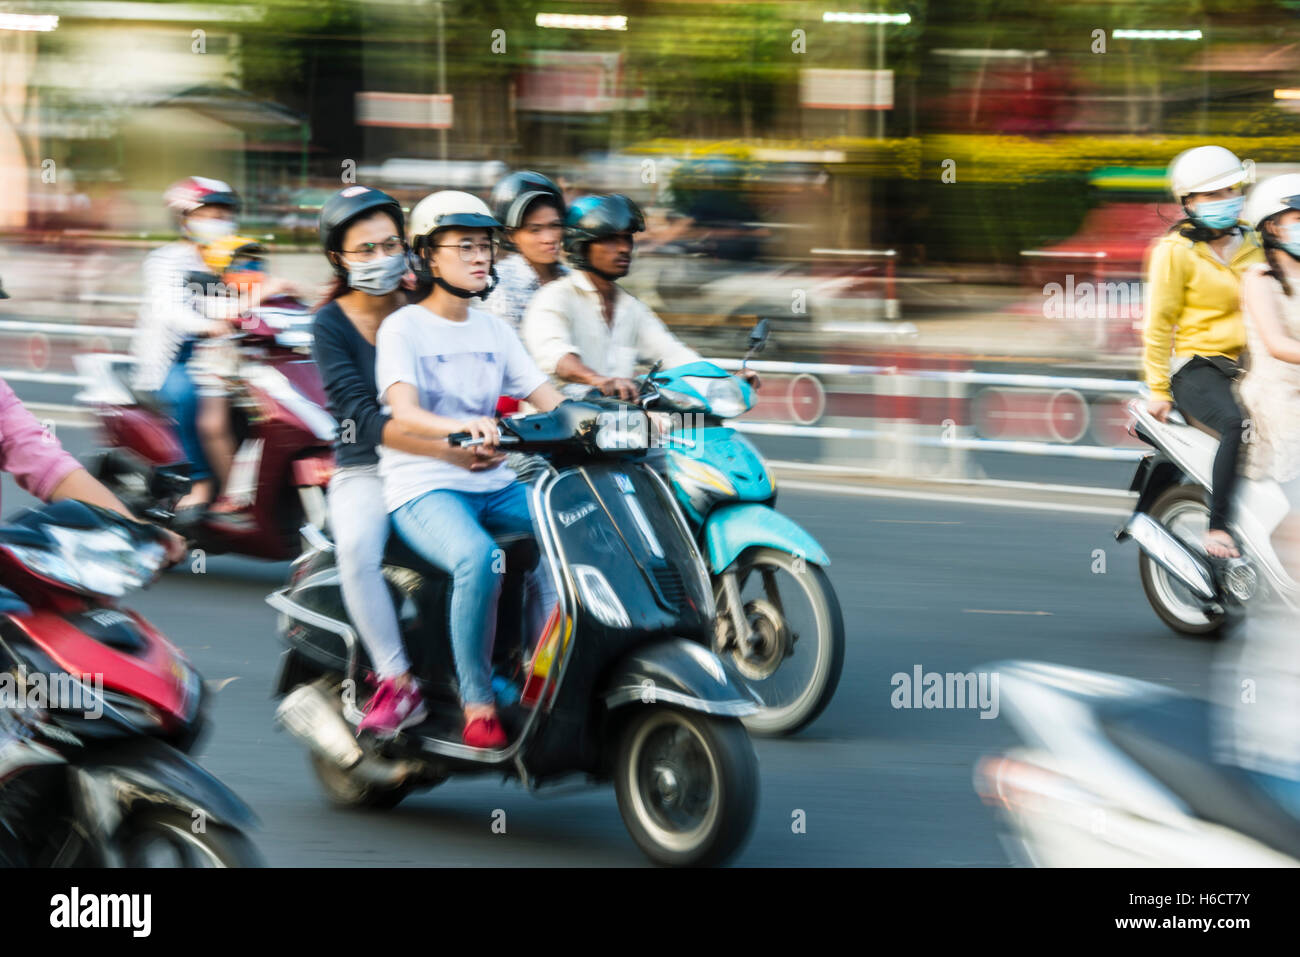 Scooter drivers in heavy traffic, motion blur, Ho Chi Minh City, Vietnam - Stock Image